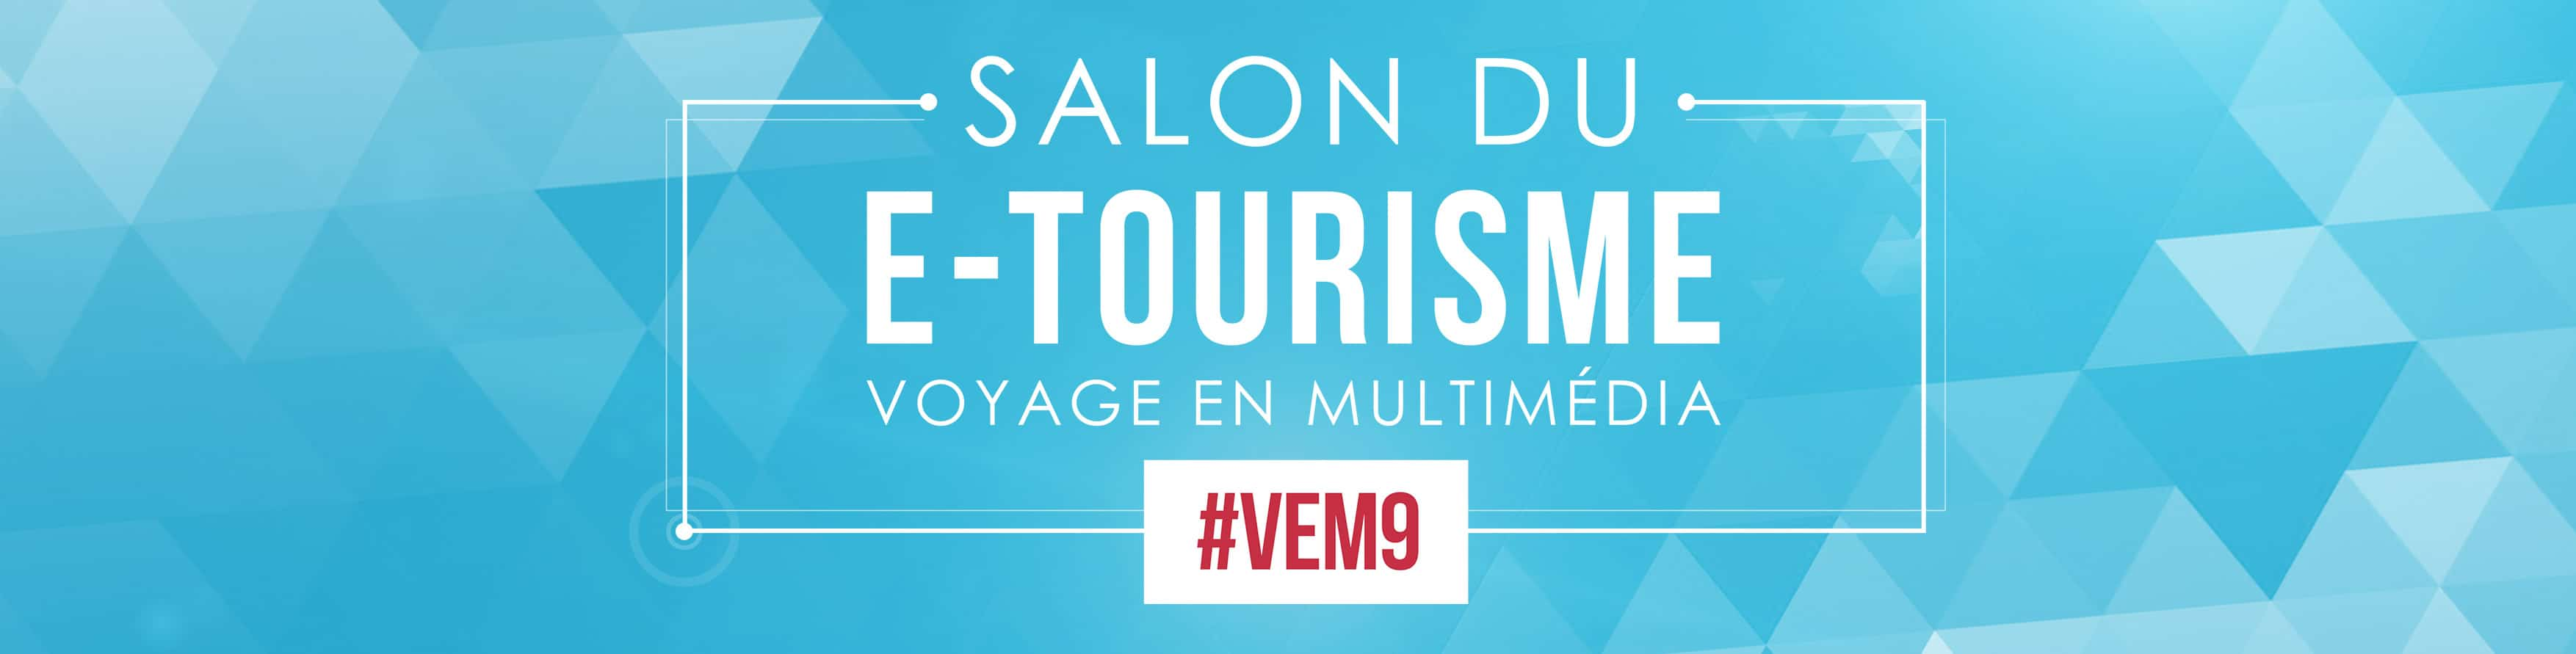 Salon etourisme